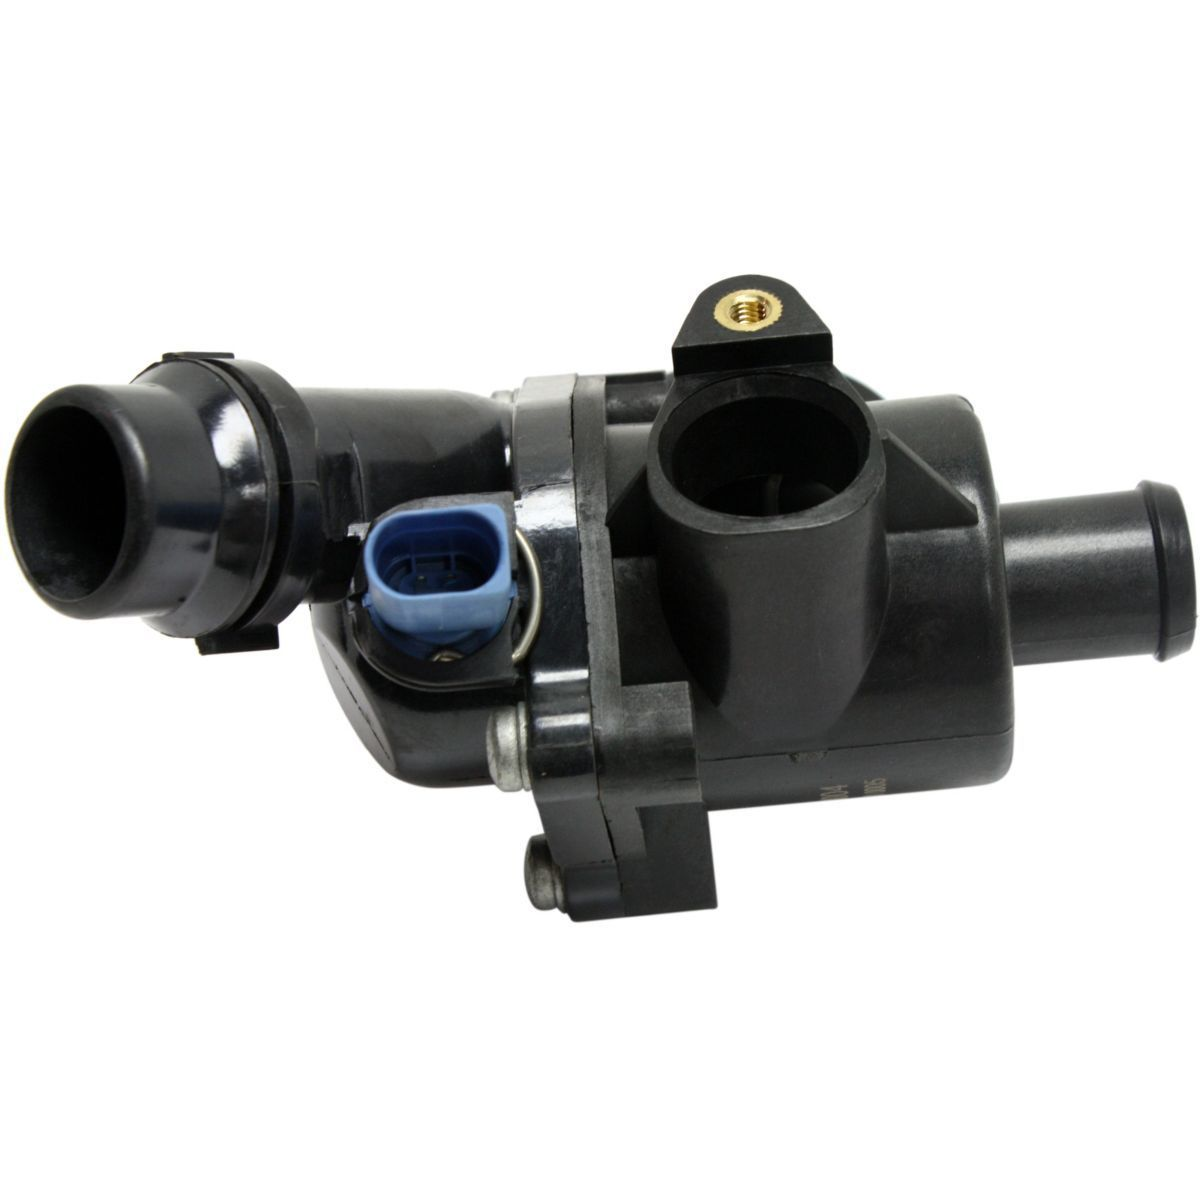 New Thermostat With Sensor Assembly For 1.8L Audi A4/A4